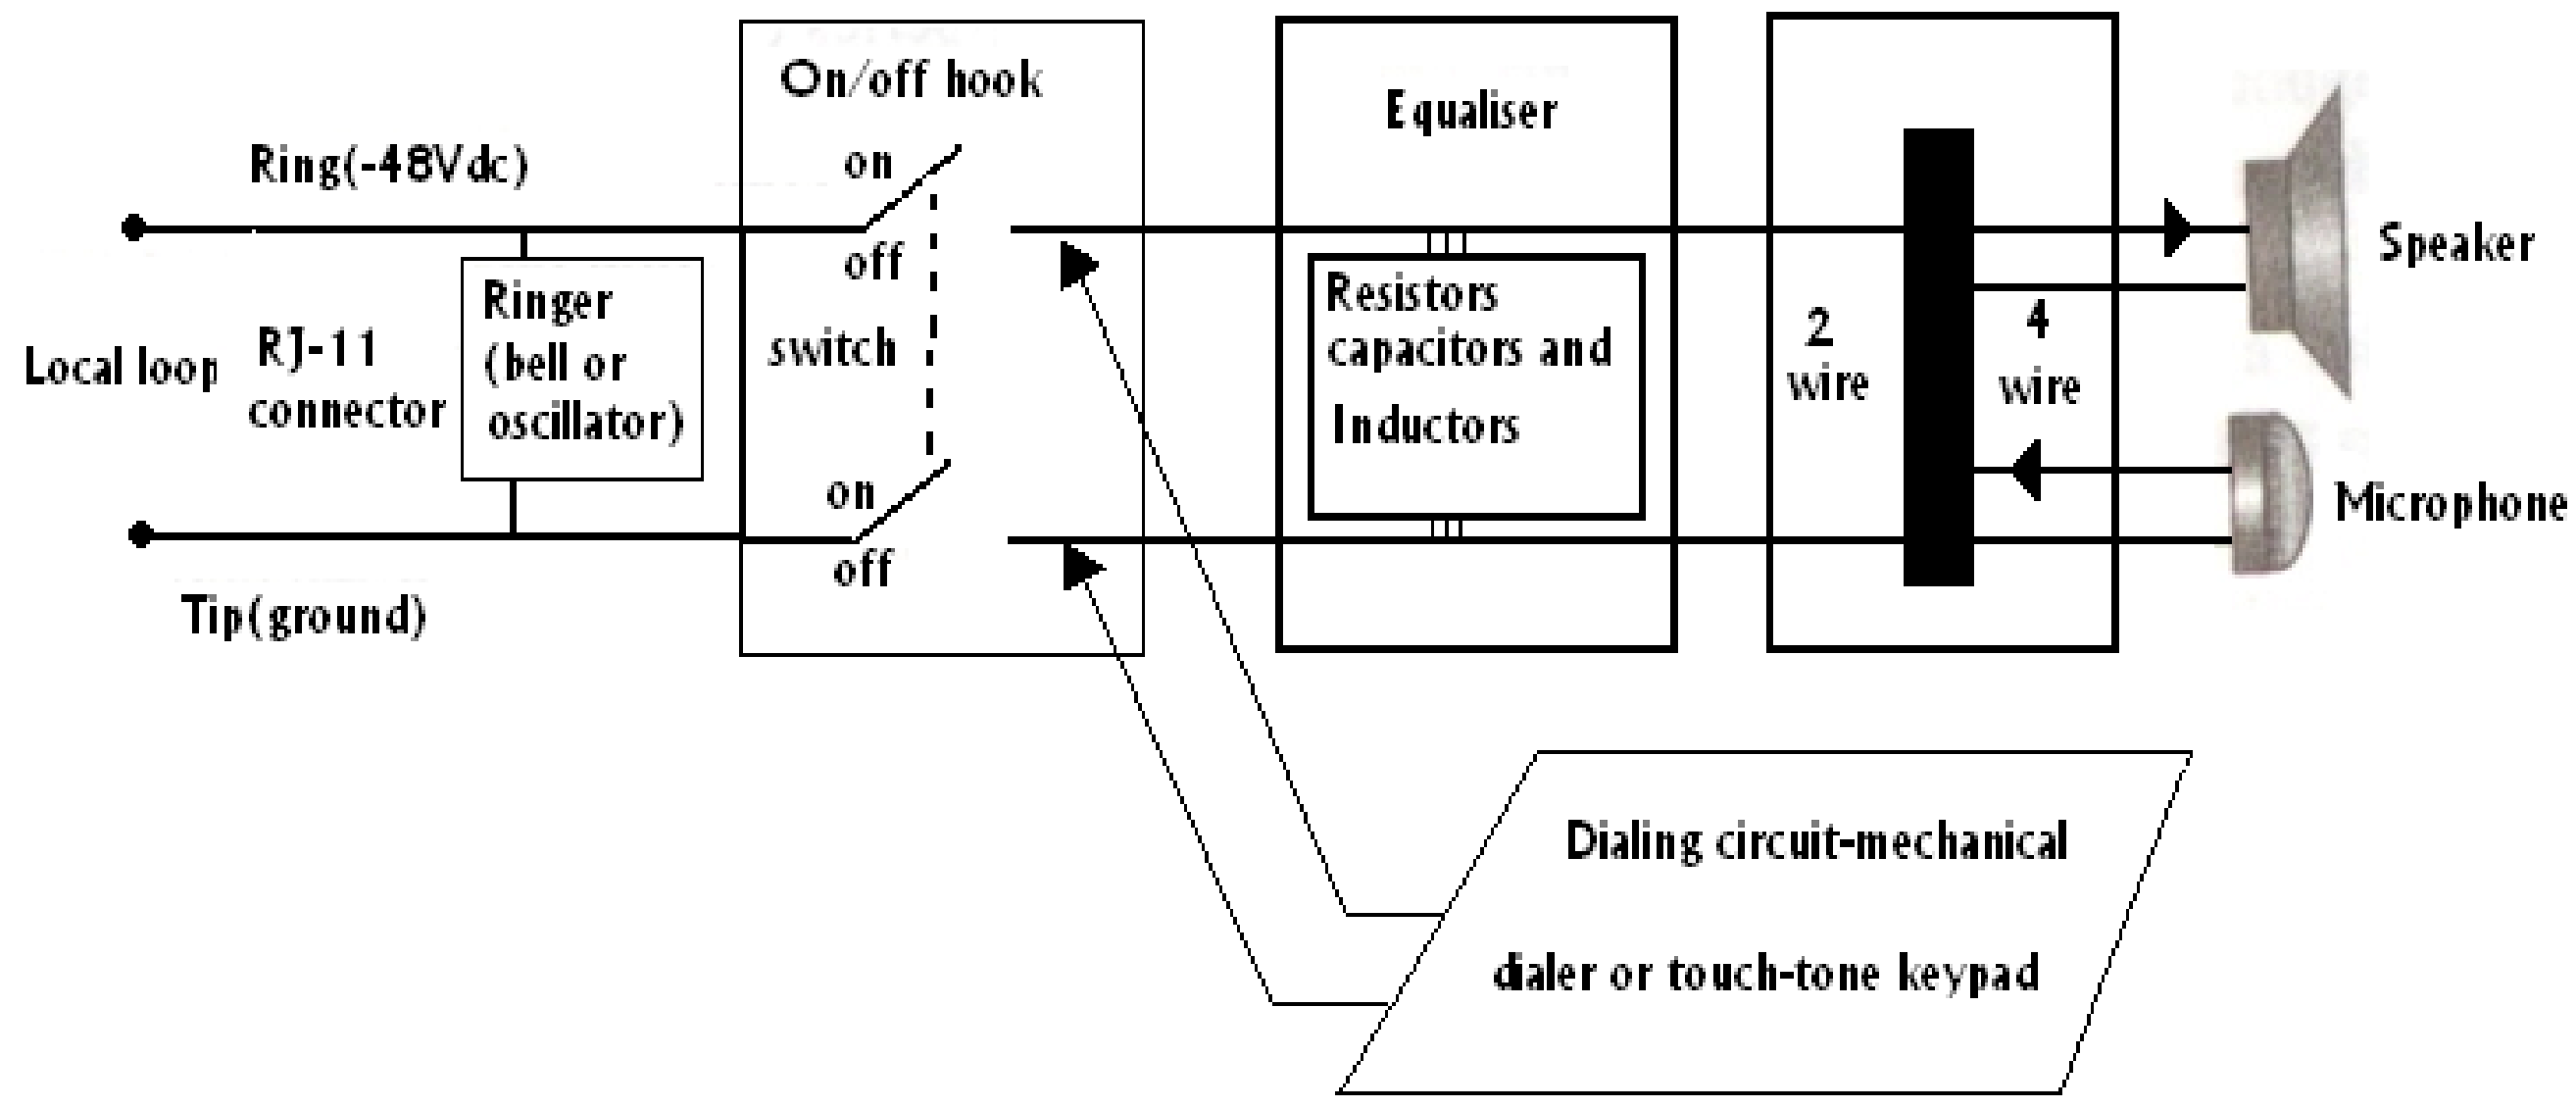 Phone Punch Down Block Diagram Schematic Diagrams 110 Wiring Electrical Work U2022 Telephone 66 Drawing